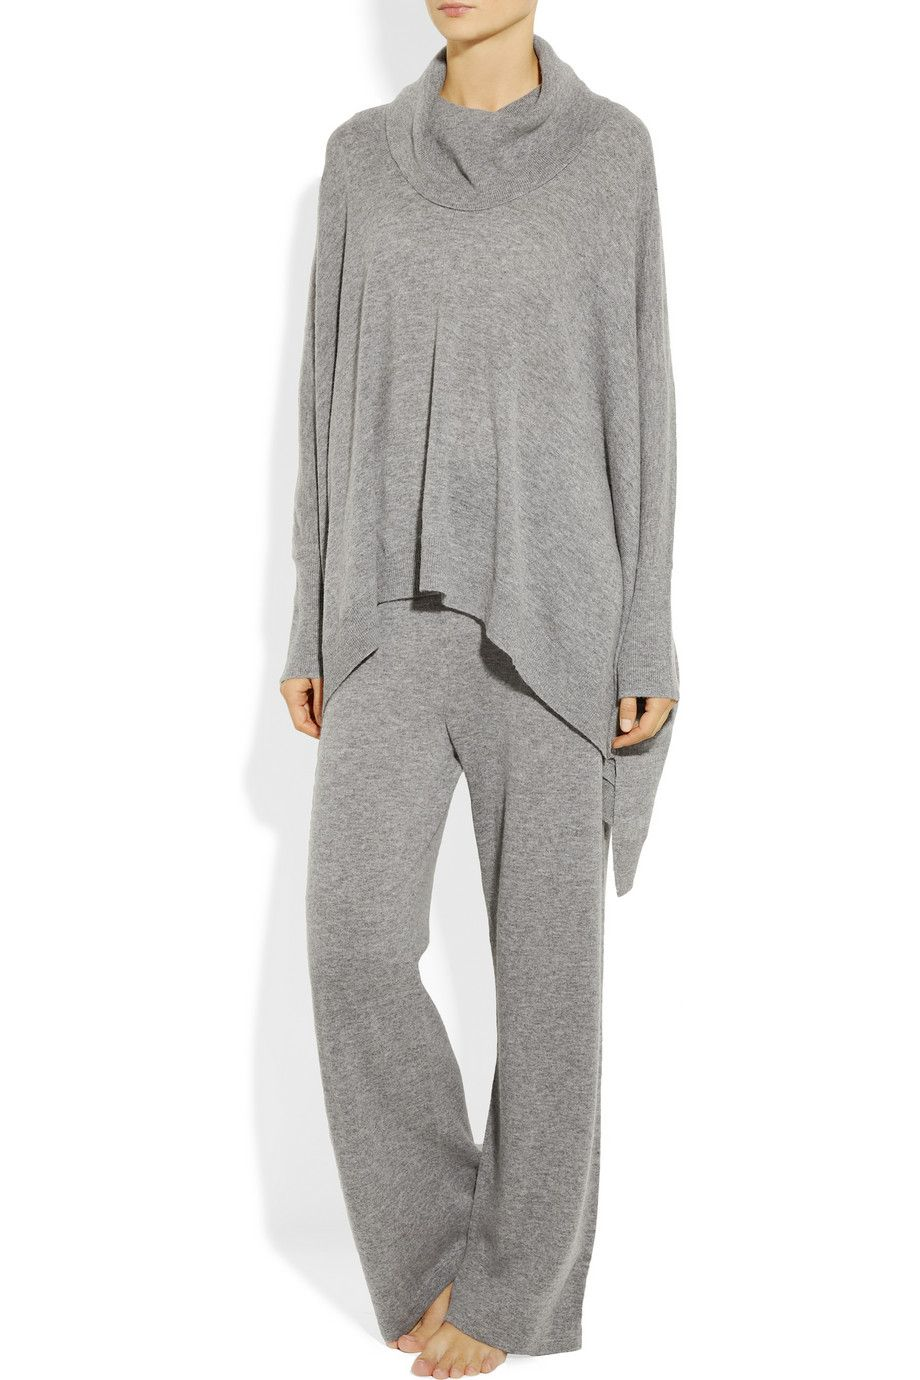 da4467cc137e Donna Karan Sleepwear ...If I had this on I might never get dressed ...